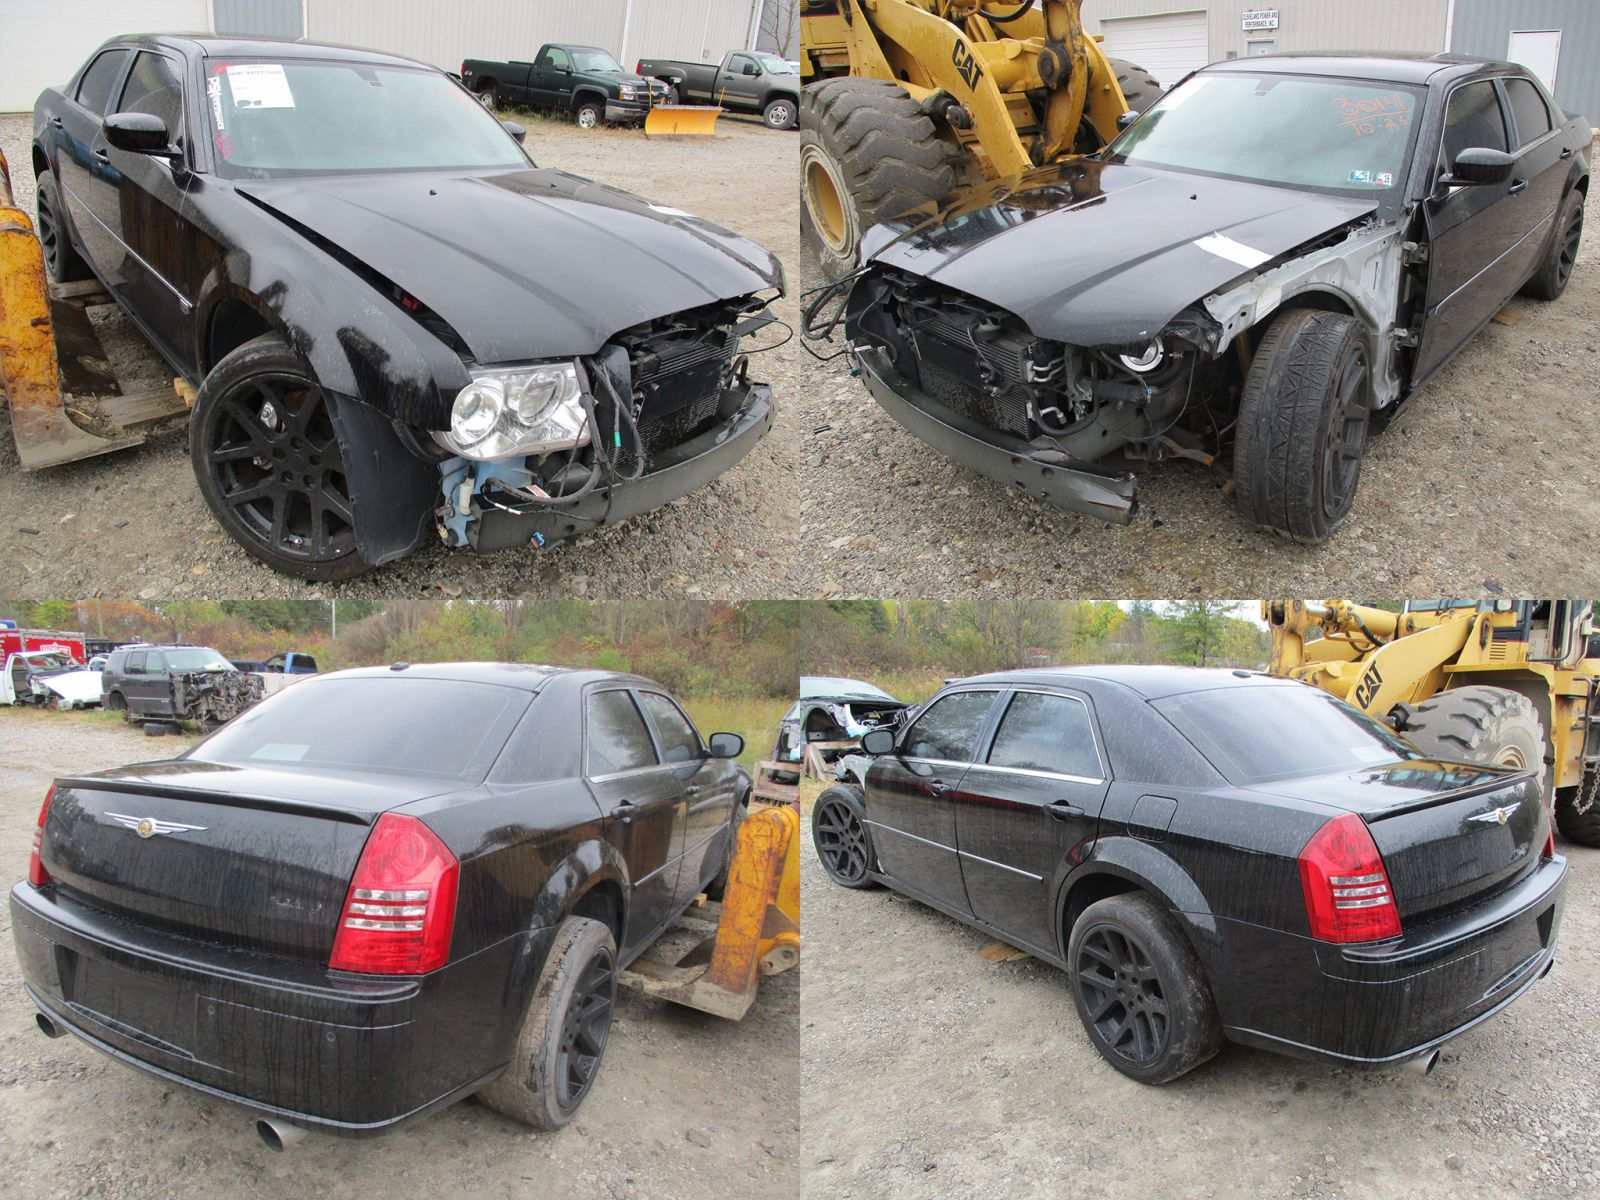 Wrecked Cars For Sale >> 2006 Black Chrysler 300C SRT-8 - Cleveland Power & Performance